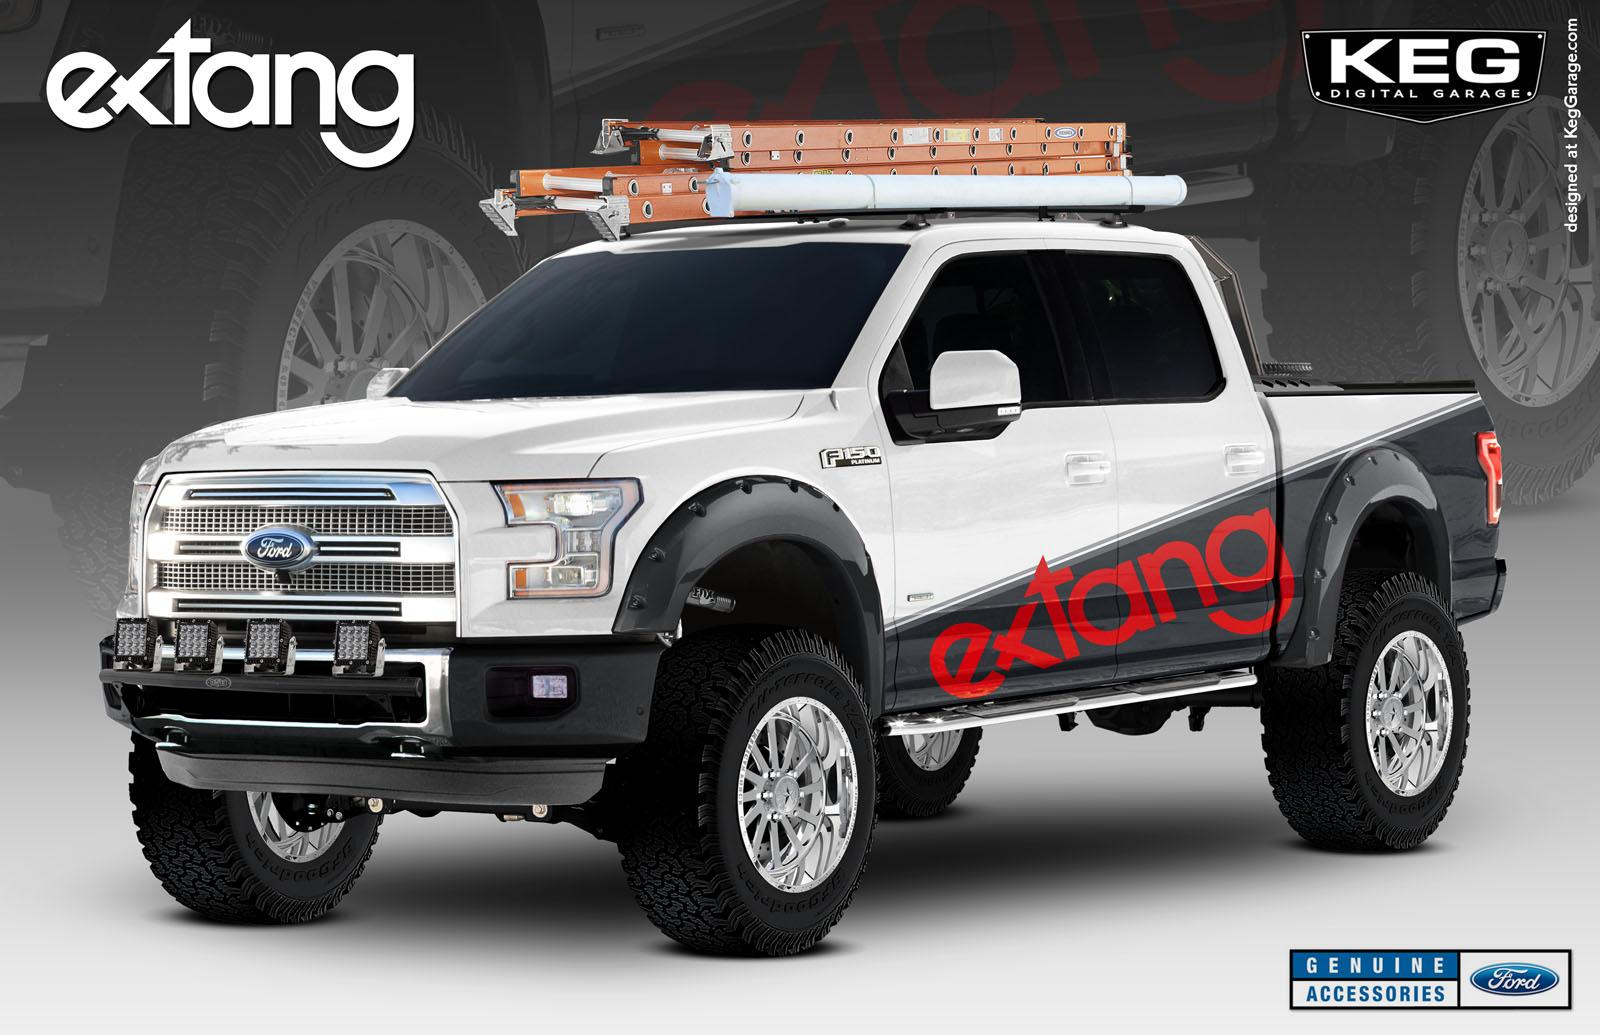 EXTANG Ford F 150